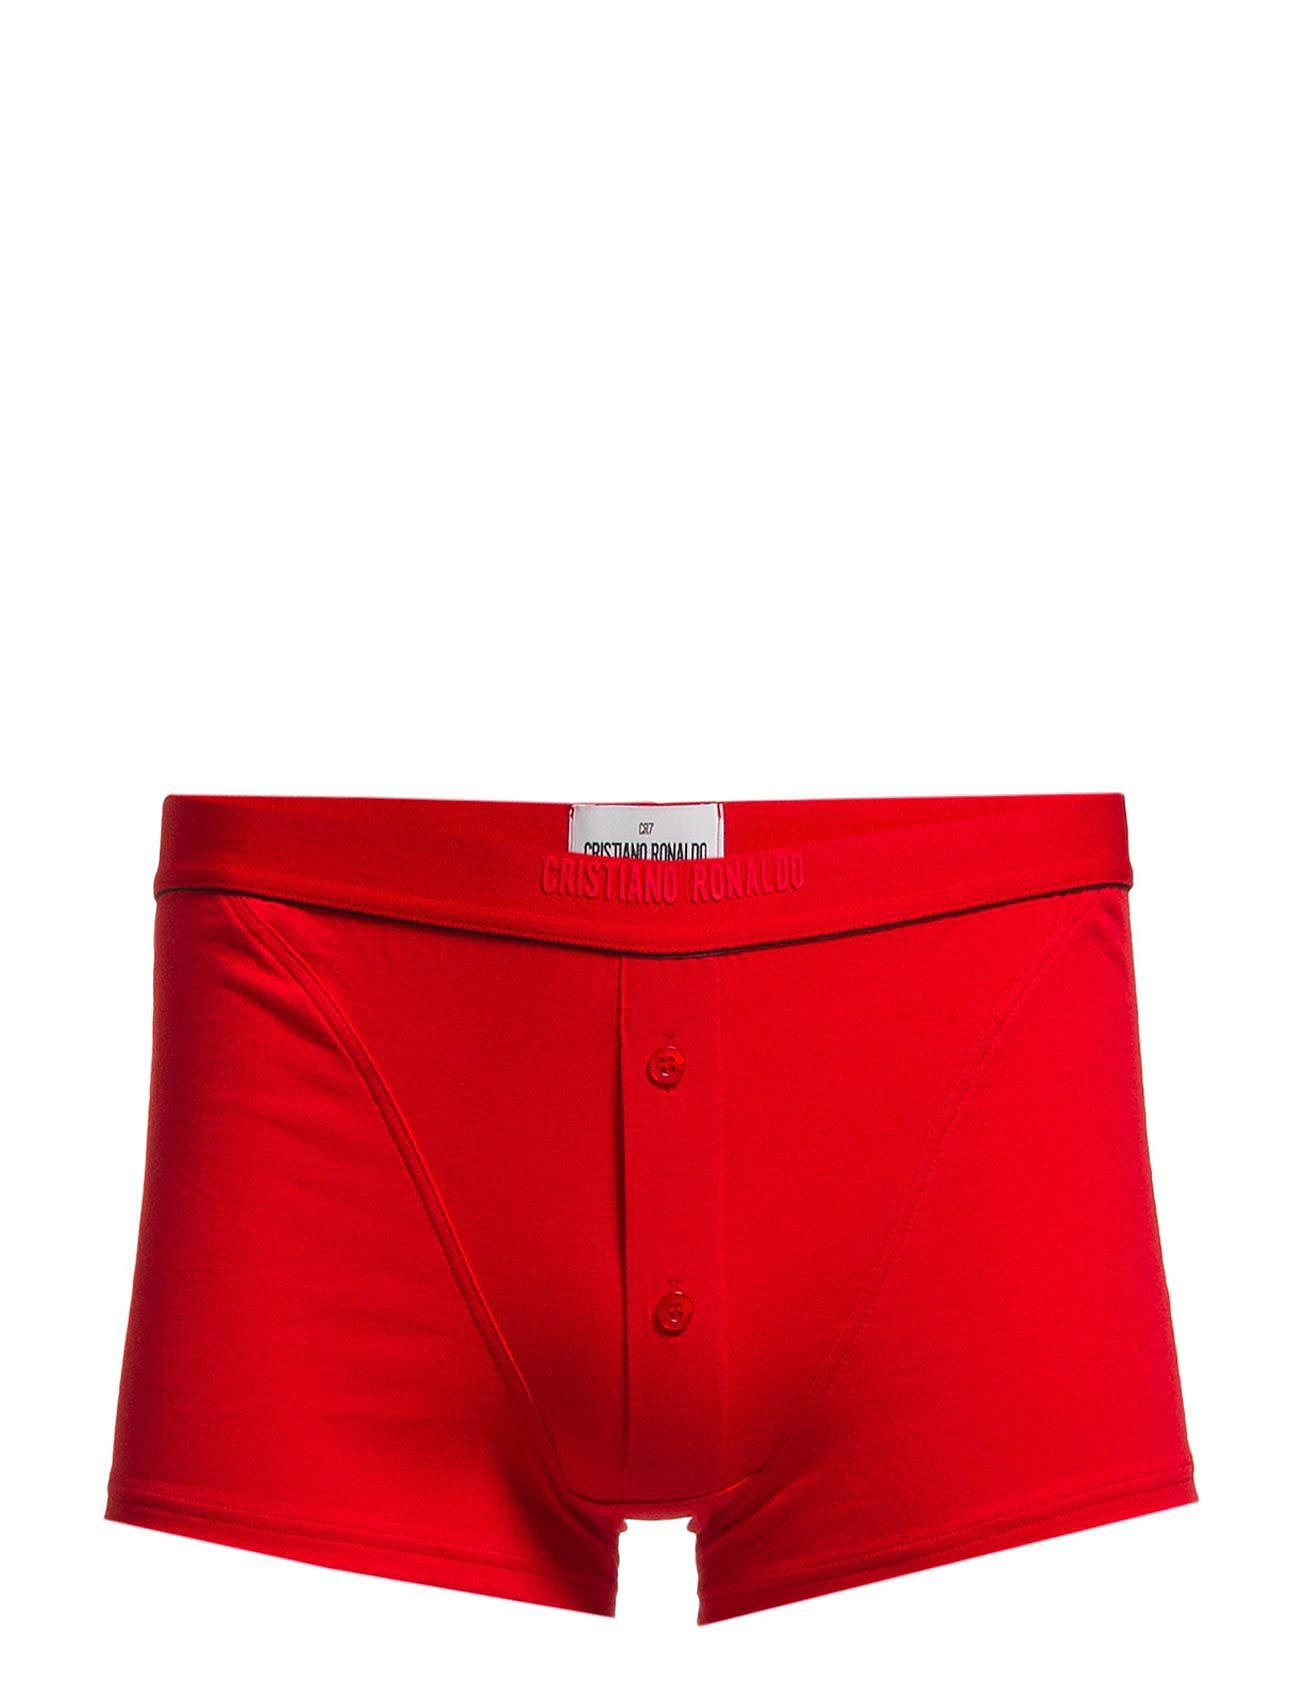 CR7 CR7 Luxury Trunk with buttons - RED